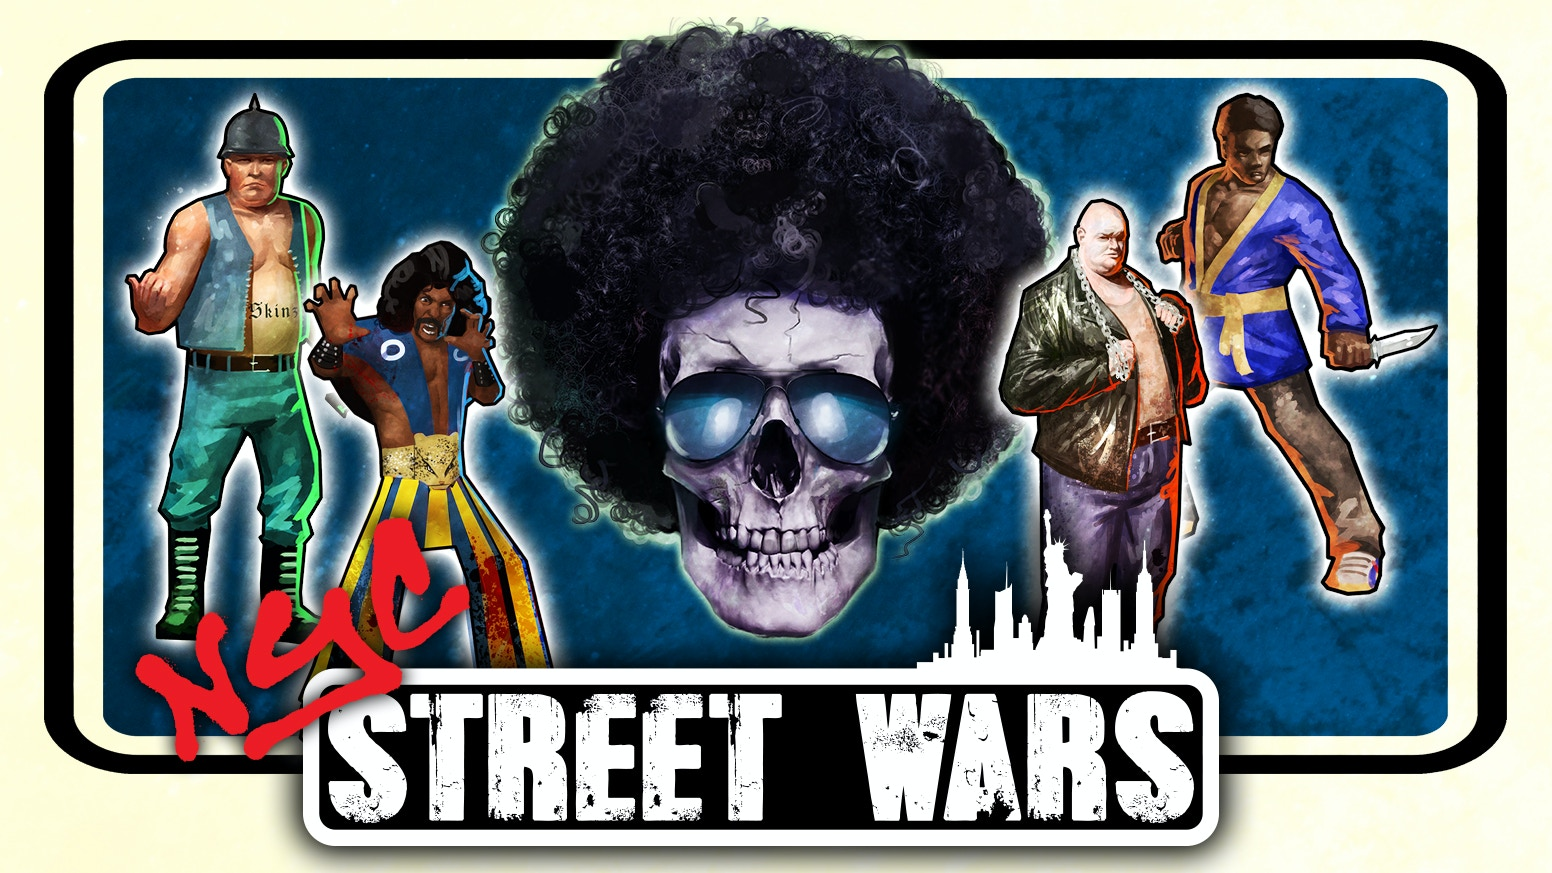 Street Wars NYC, a new range of 1970's New York gangs and rules. Battle it out on the means streets of the Big Apple.